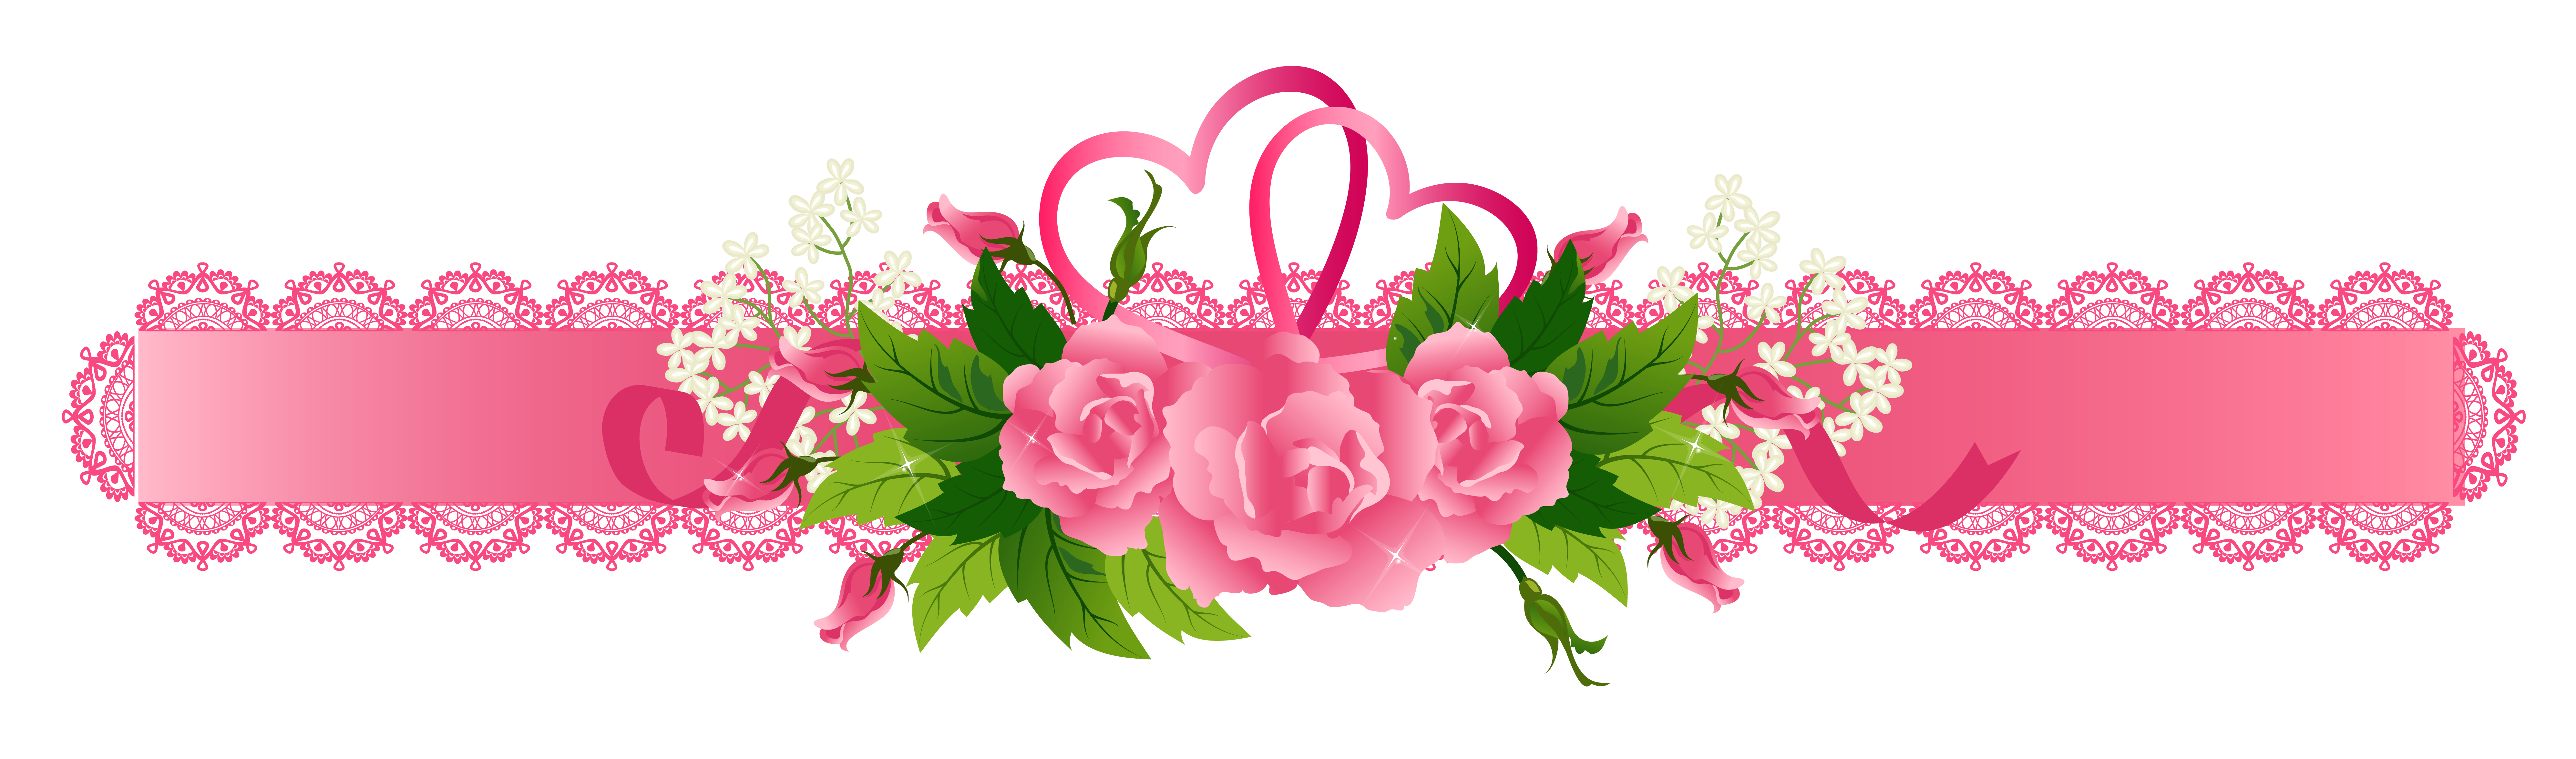 Decorative ribbon with roses. Clipart design pink